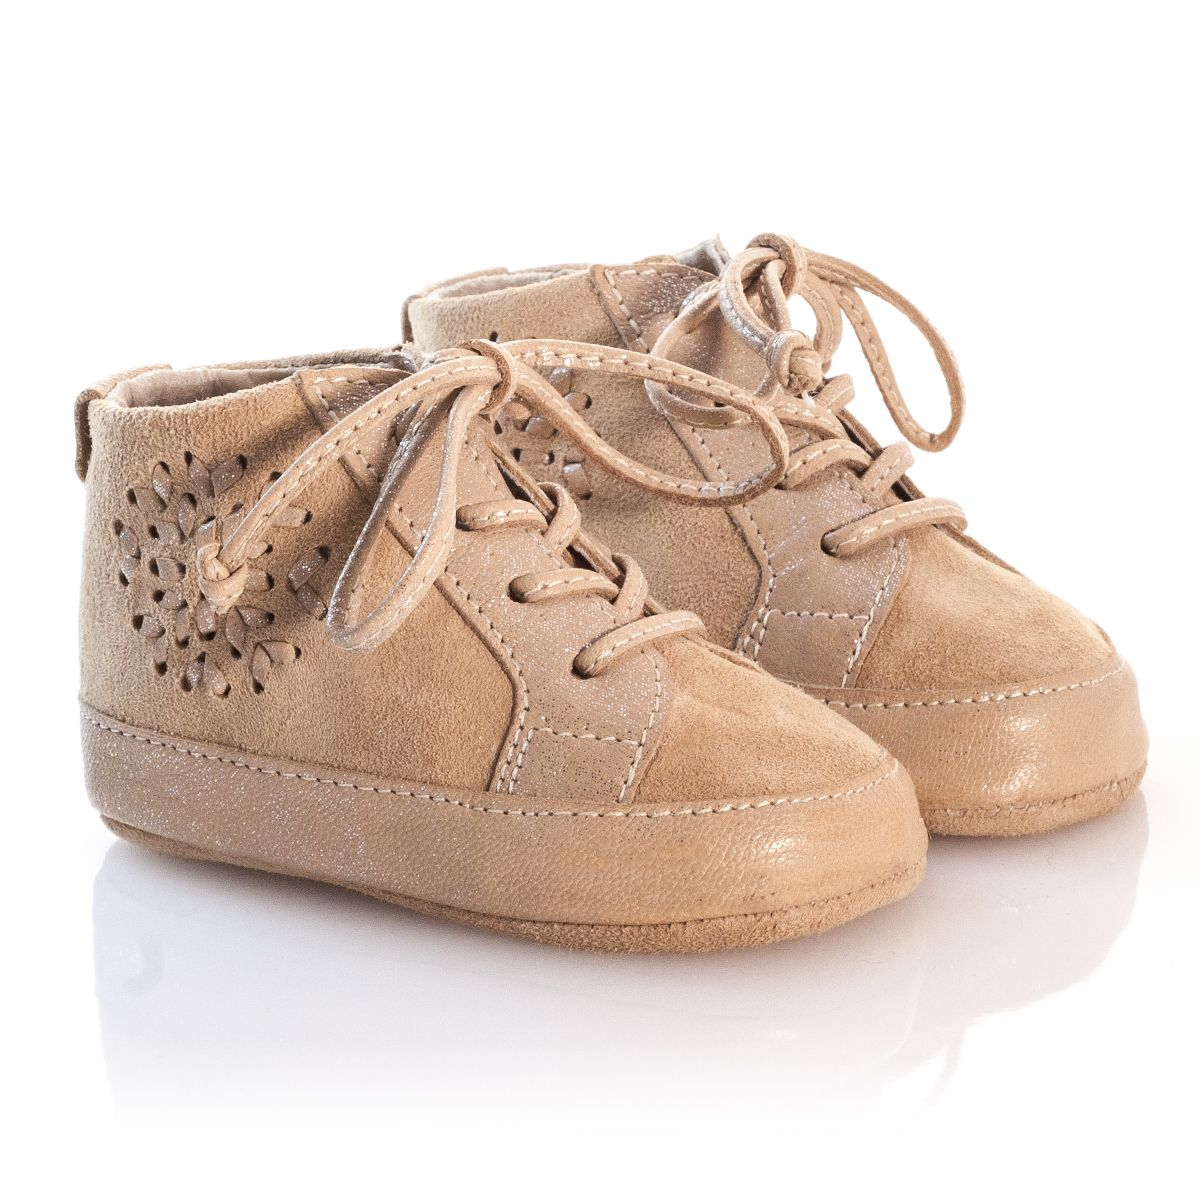 VIBYS Soft soled handmade baby sneakers from beige leather